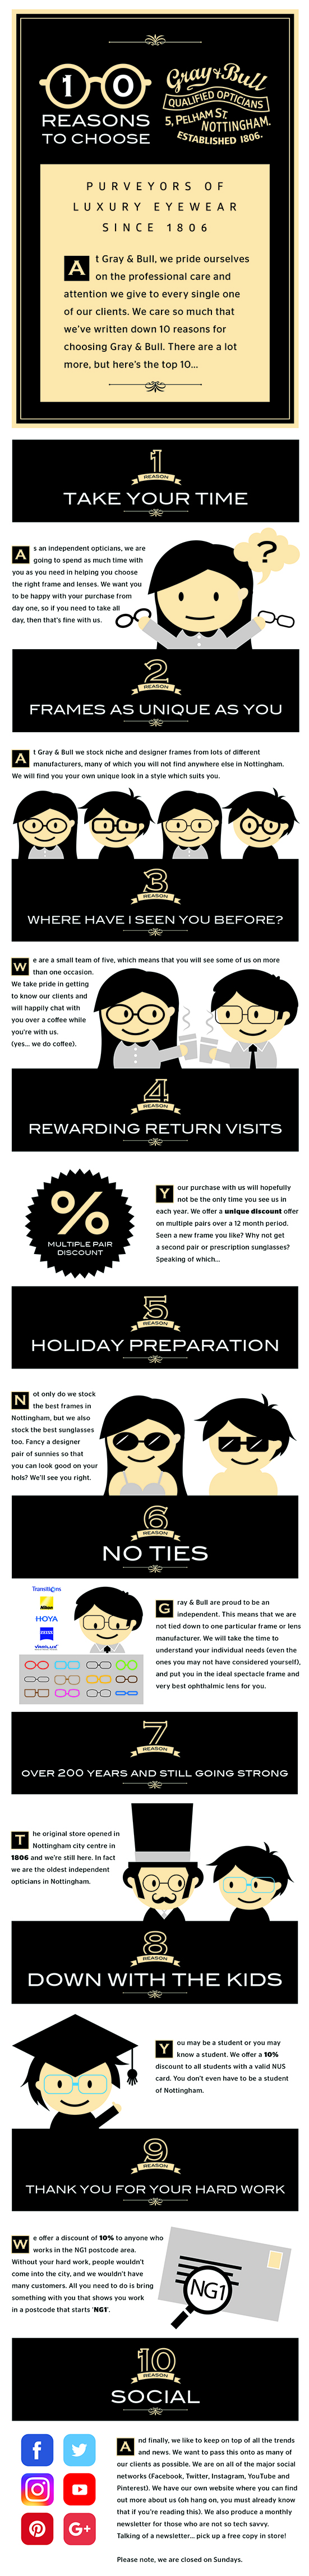 Top 10 reasons to choose Gray and Bull Styling Opticians